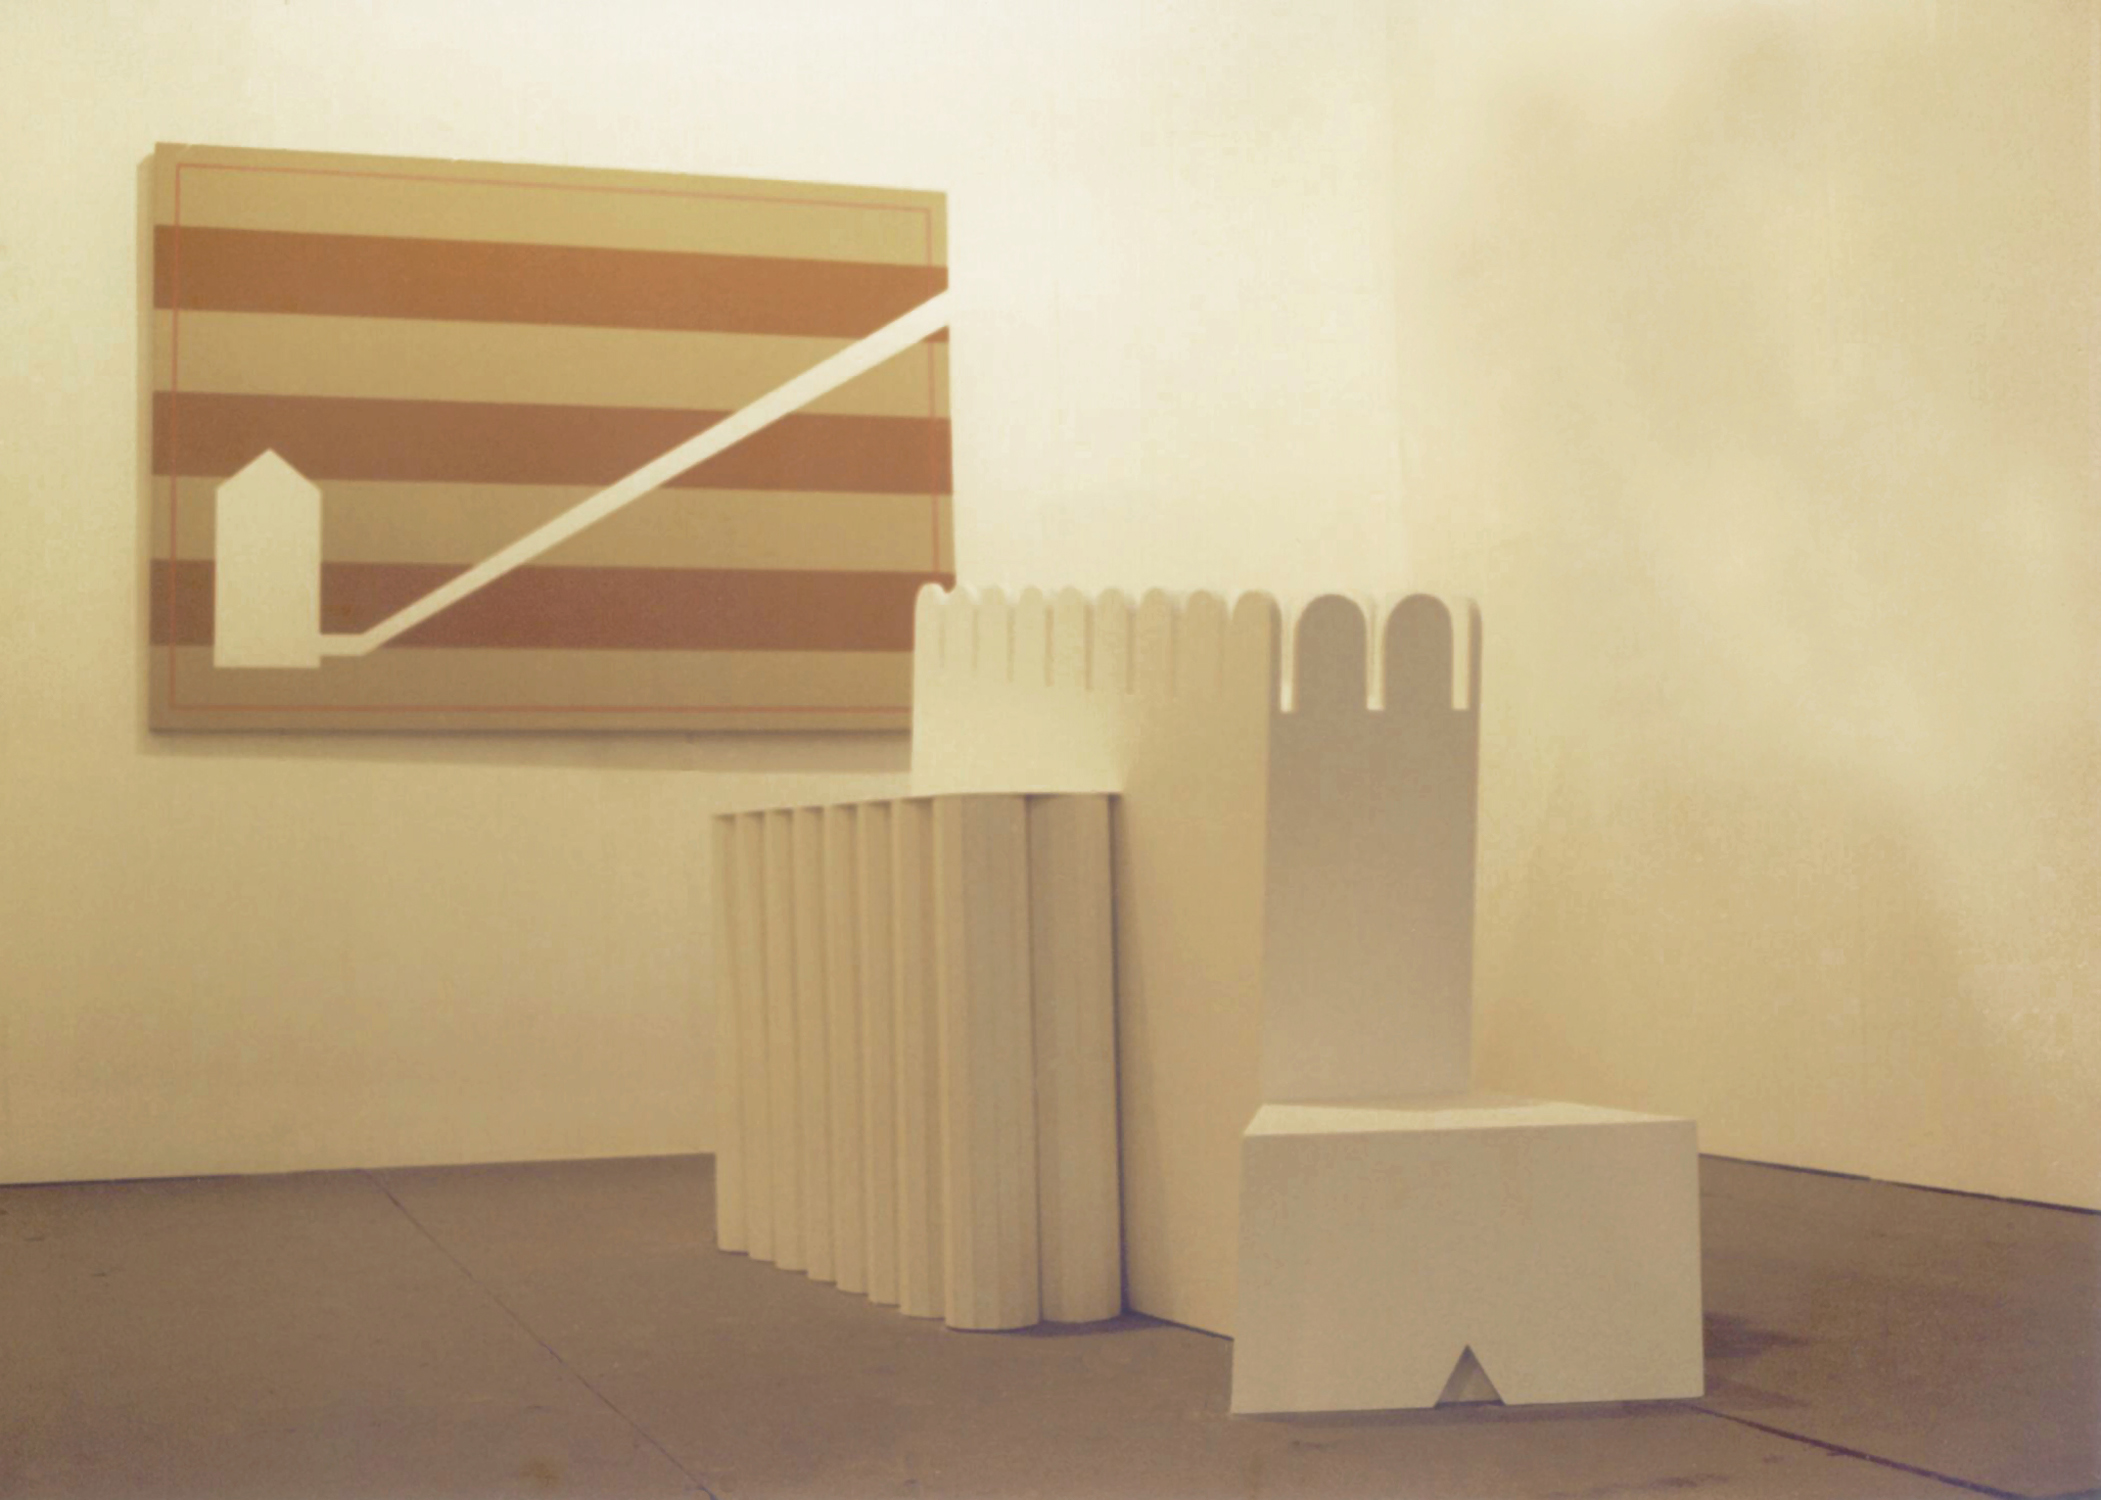 Burial Chamber I, 1998, sculpture: painted wood, 200 x 122 x 122 cm and painting: Chamber, 1998, acrylic on canvas,140 x 100 cm. Installation view. Courtesy: La Gaia Collection, Italy